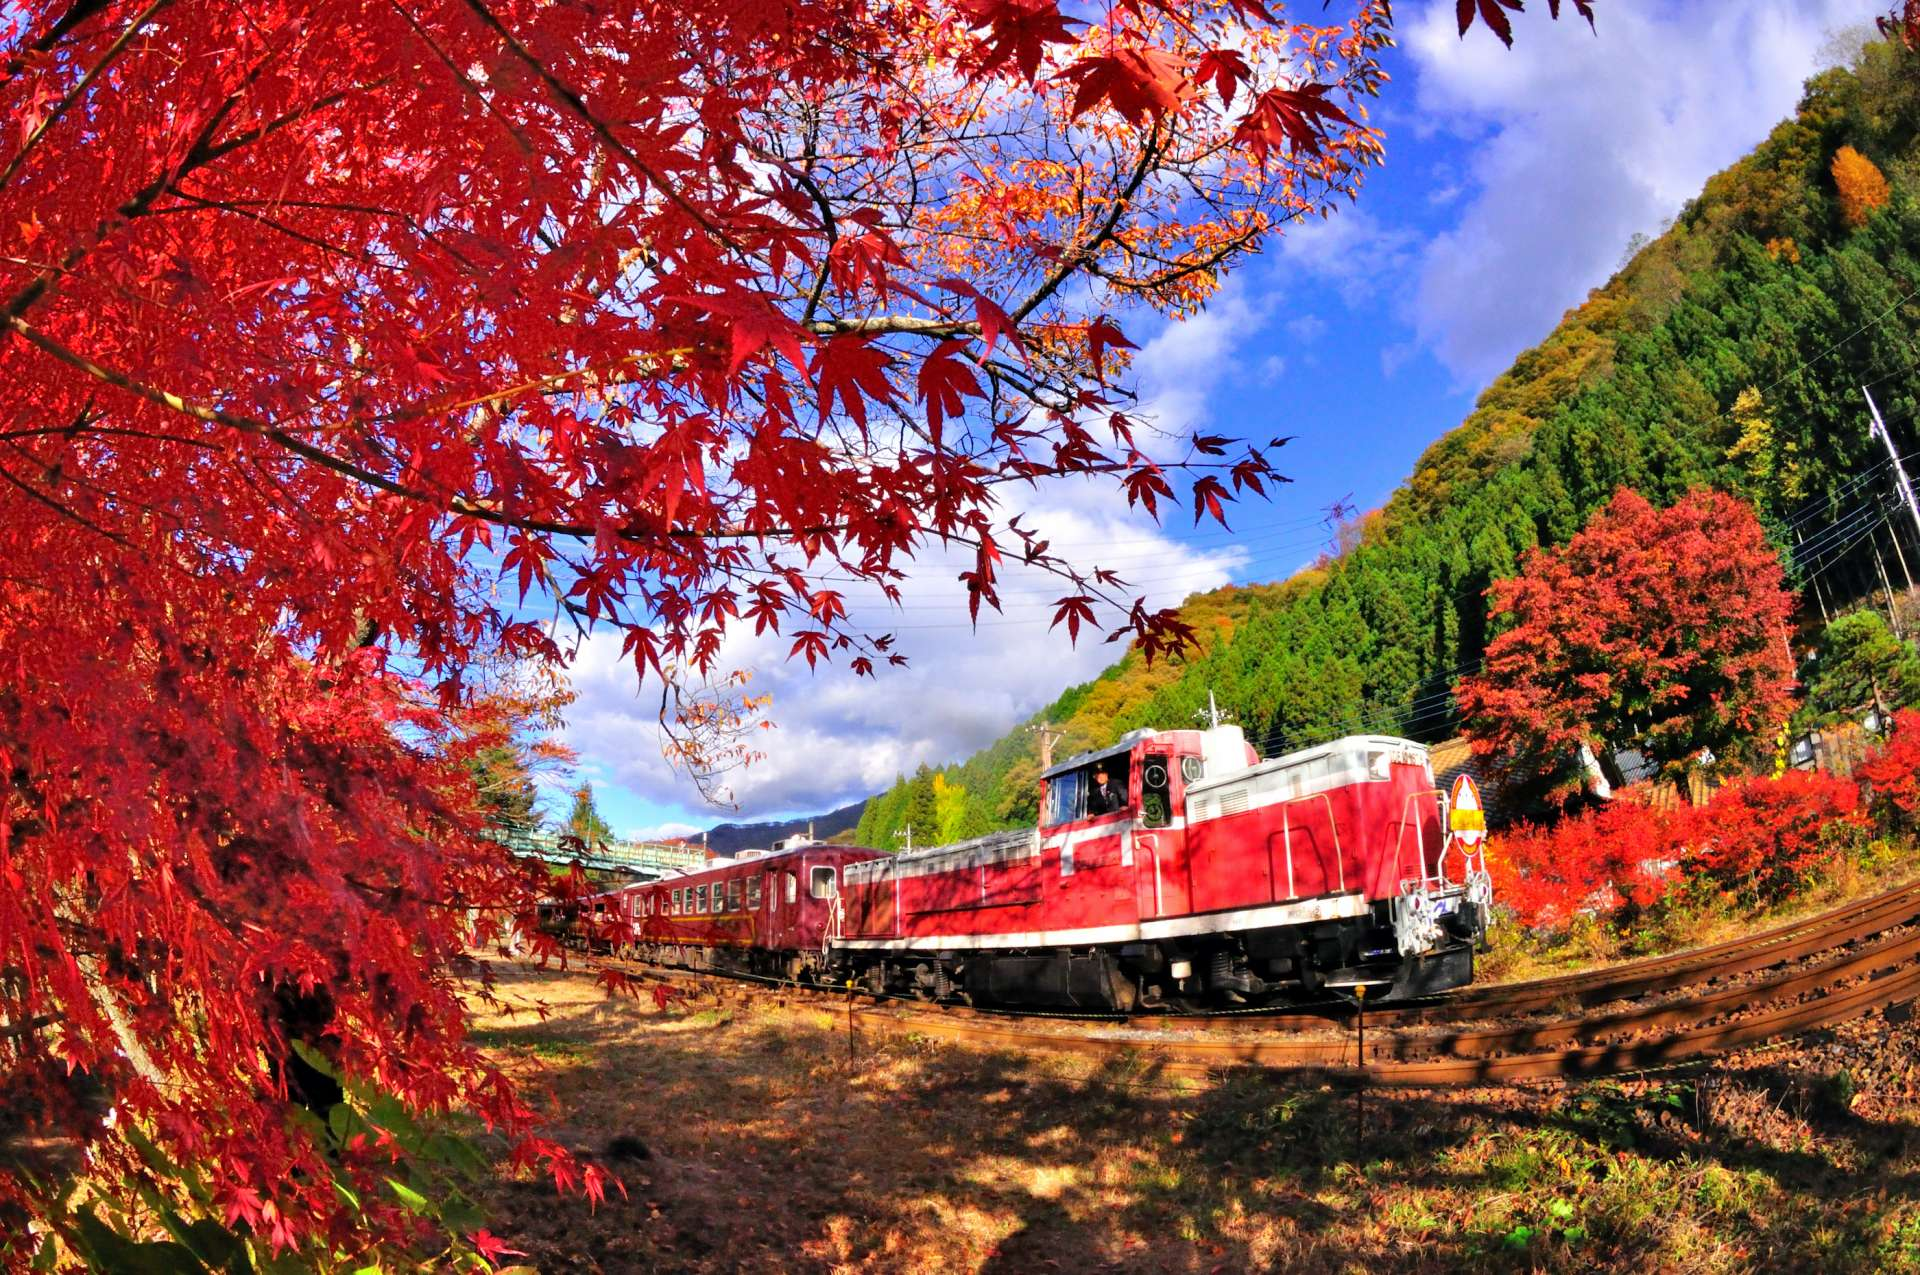 The contrast in autumn of the fall leaves and the blue sky is so beautiful in Watarase Gorge